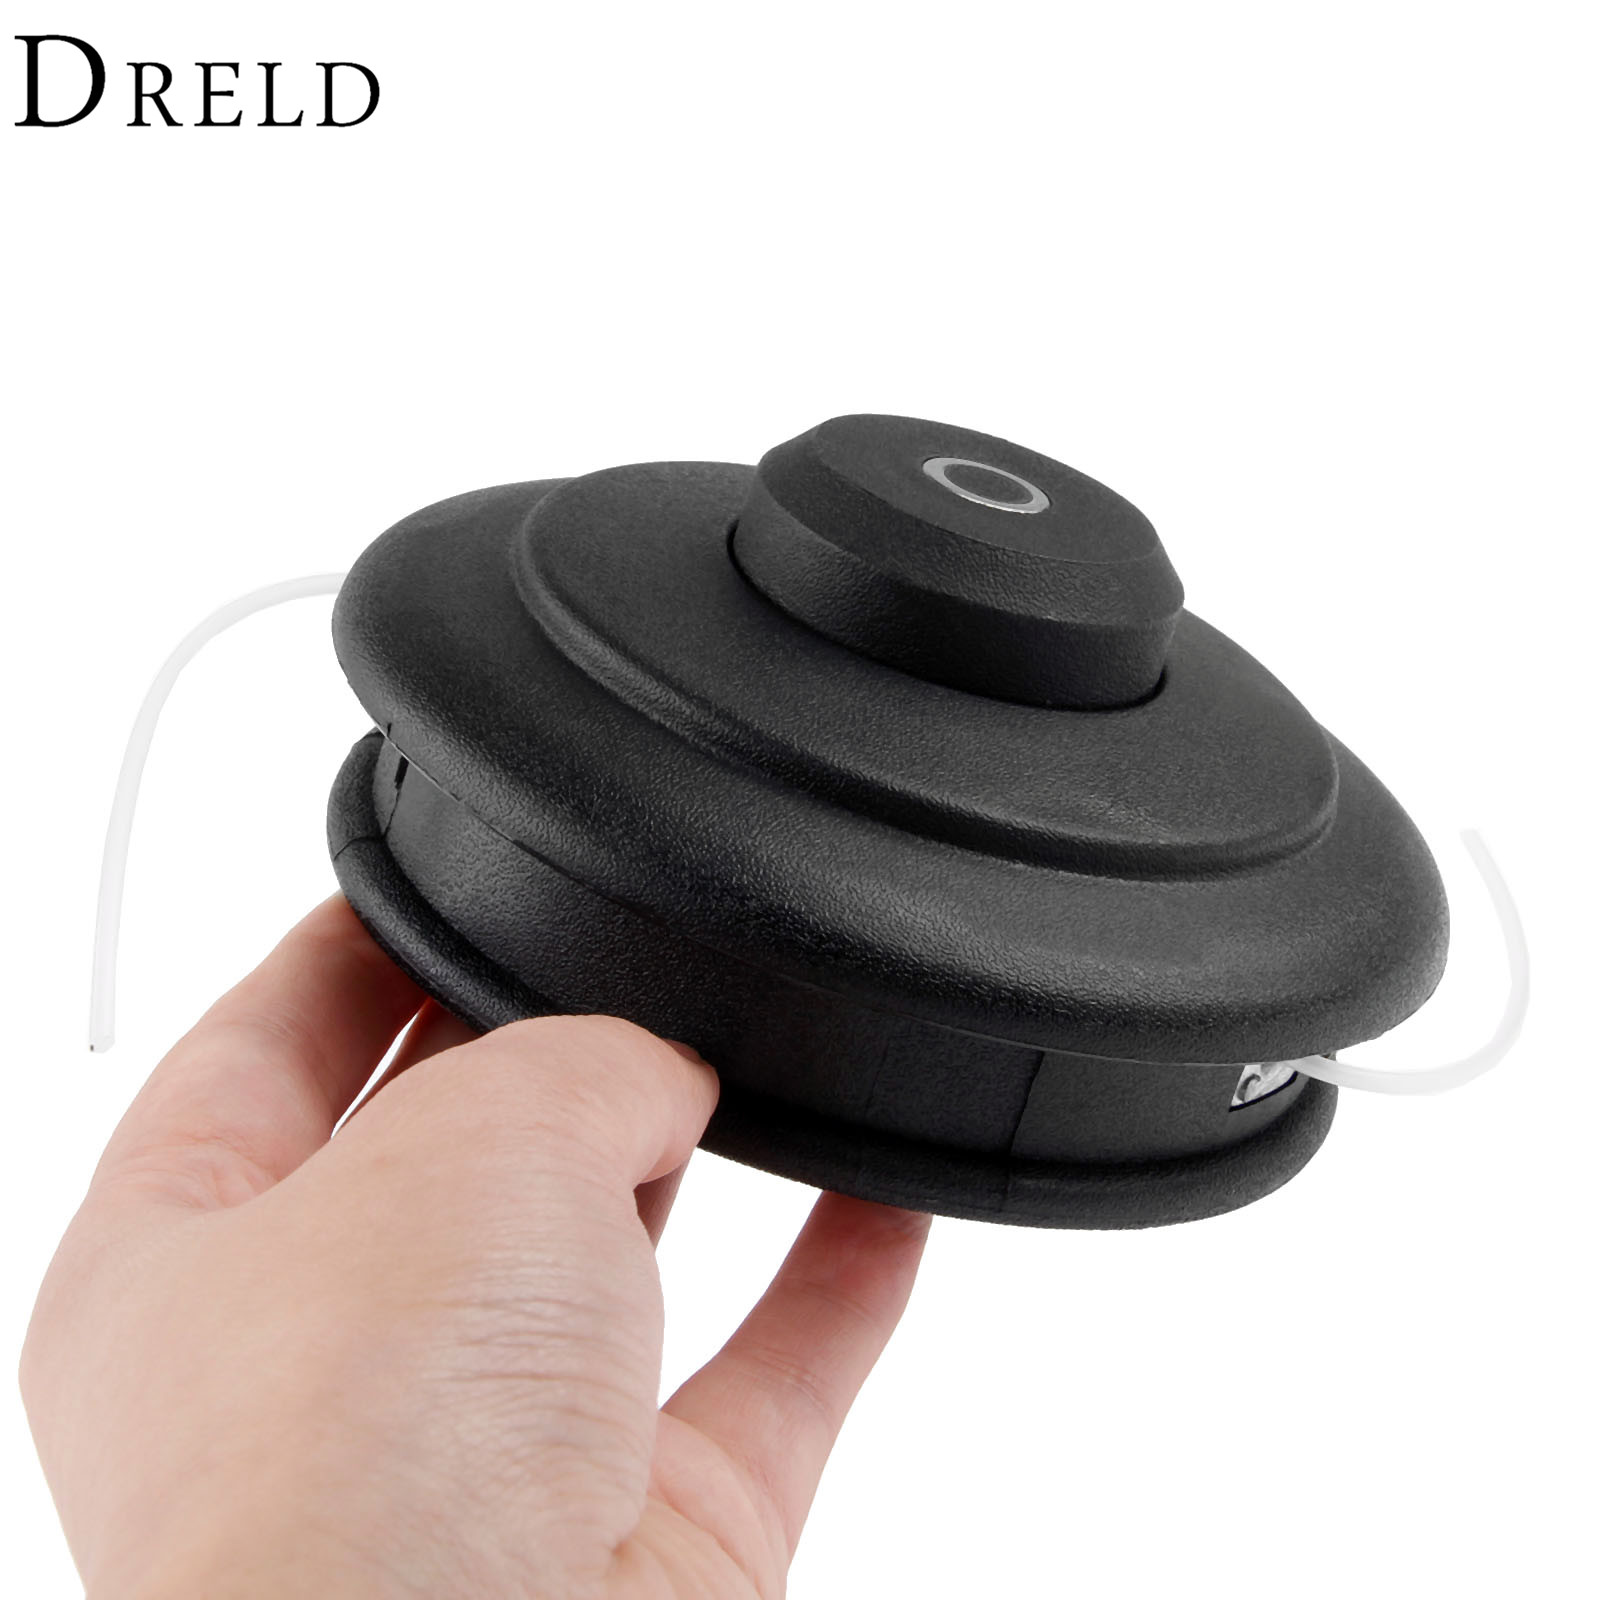 DRELD Nylon Trimmer Head Adaptor M10*1.25 Double Trimmer Line Bump and Go For Garden Use Grass Trimmer Head Garden Tool Parts dreld 125 80mm nylon bump feed line grass trimmer strimmer head garden accessories supplies for lawn mower garden tool parts